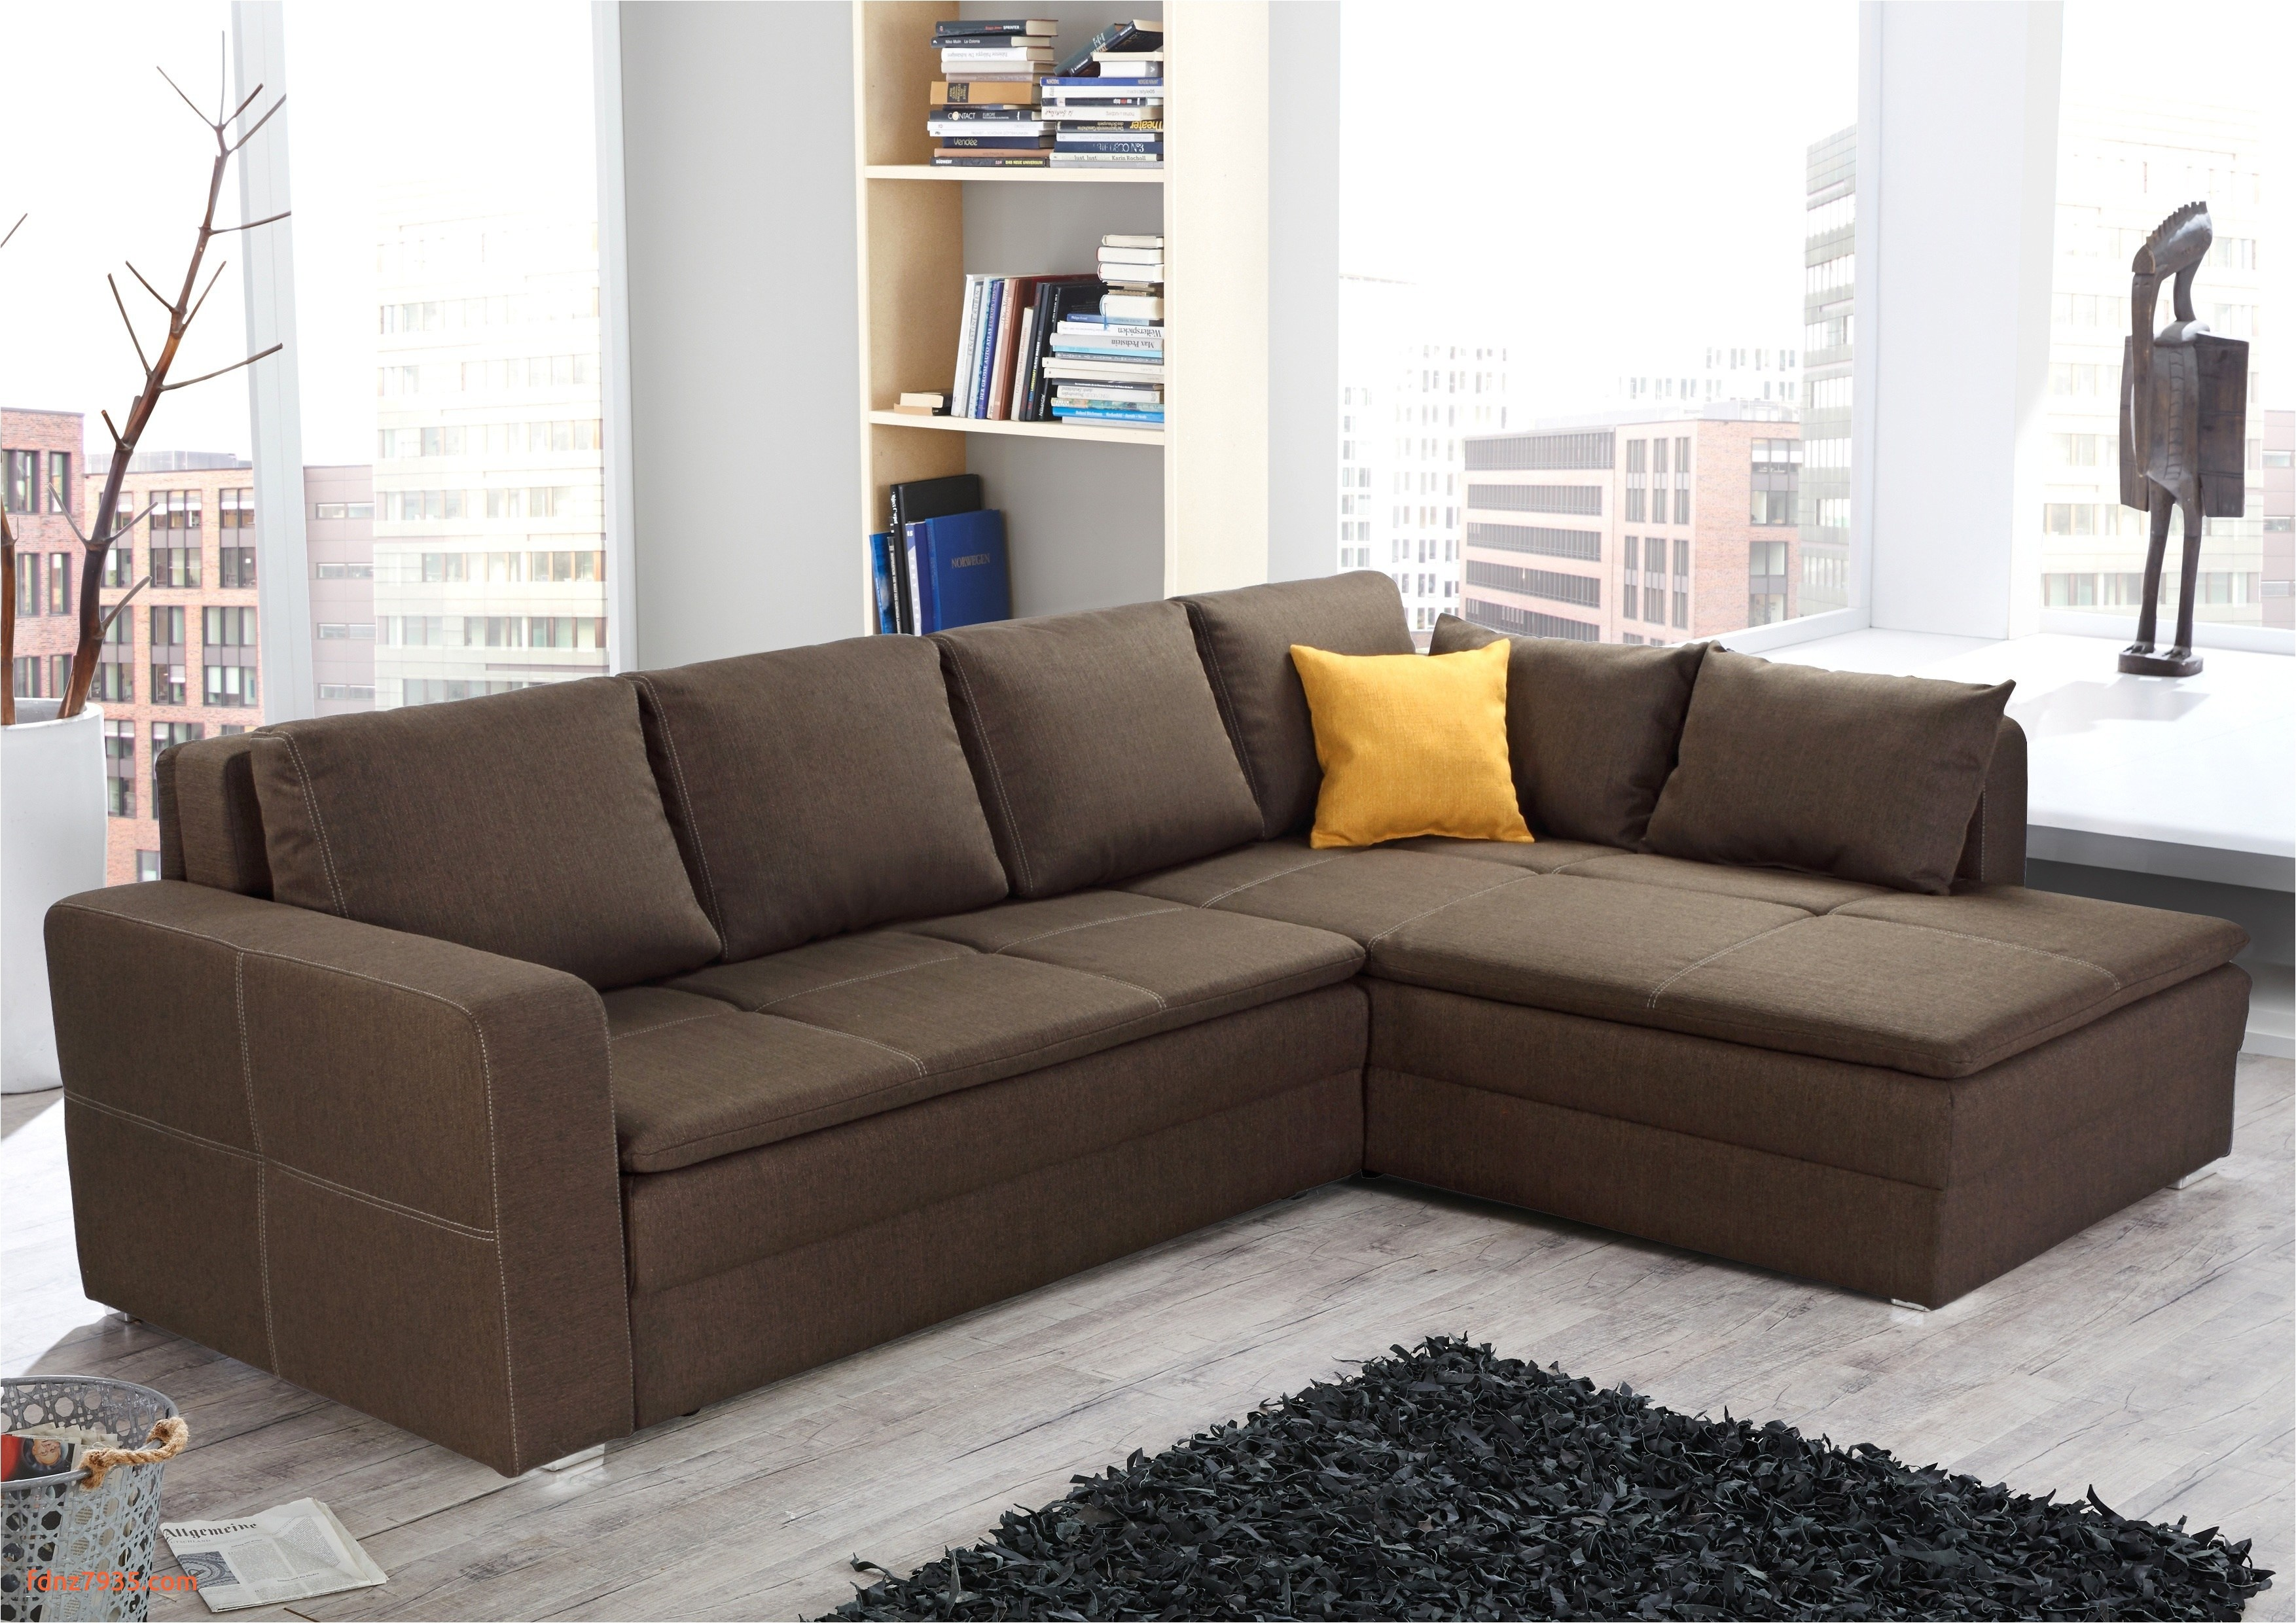 Modular Sectional sofa Elegant Beautiful Leather Sectional Sleeper sofa  Designsolutions Usa